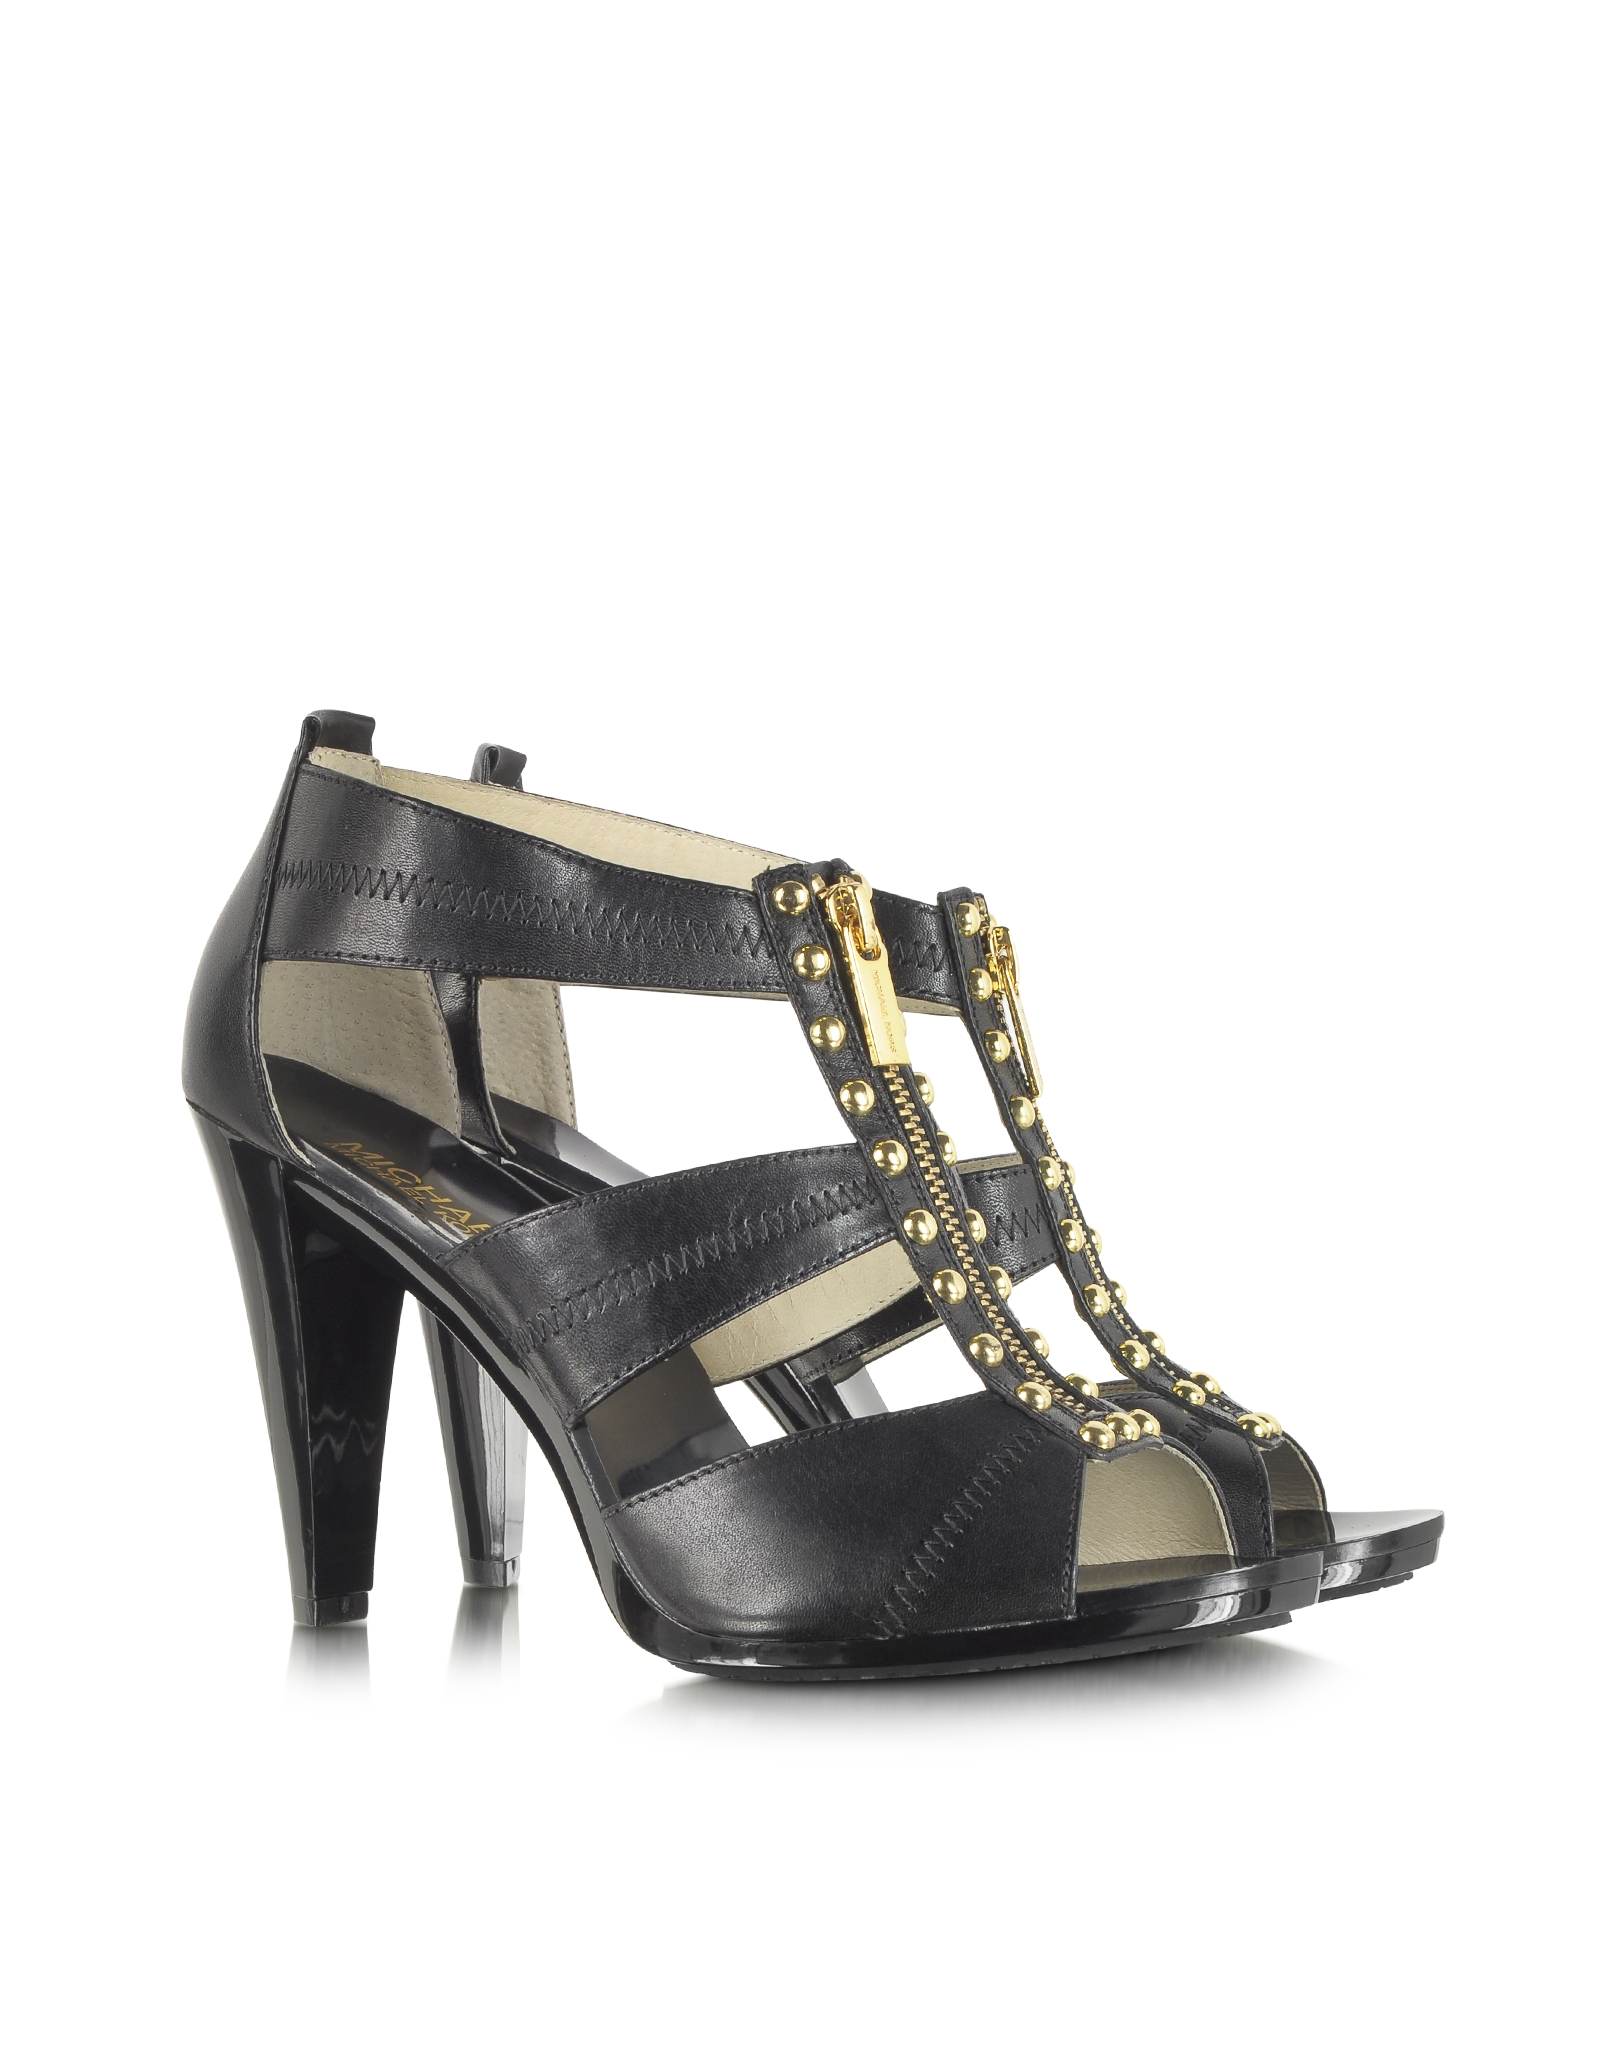 Michael Kors Linden Berkley T Strap Black Leather Sandal